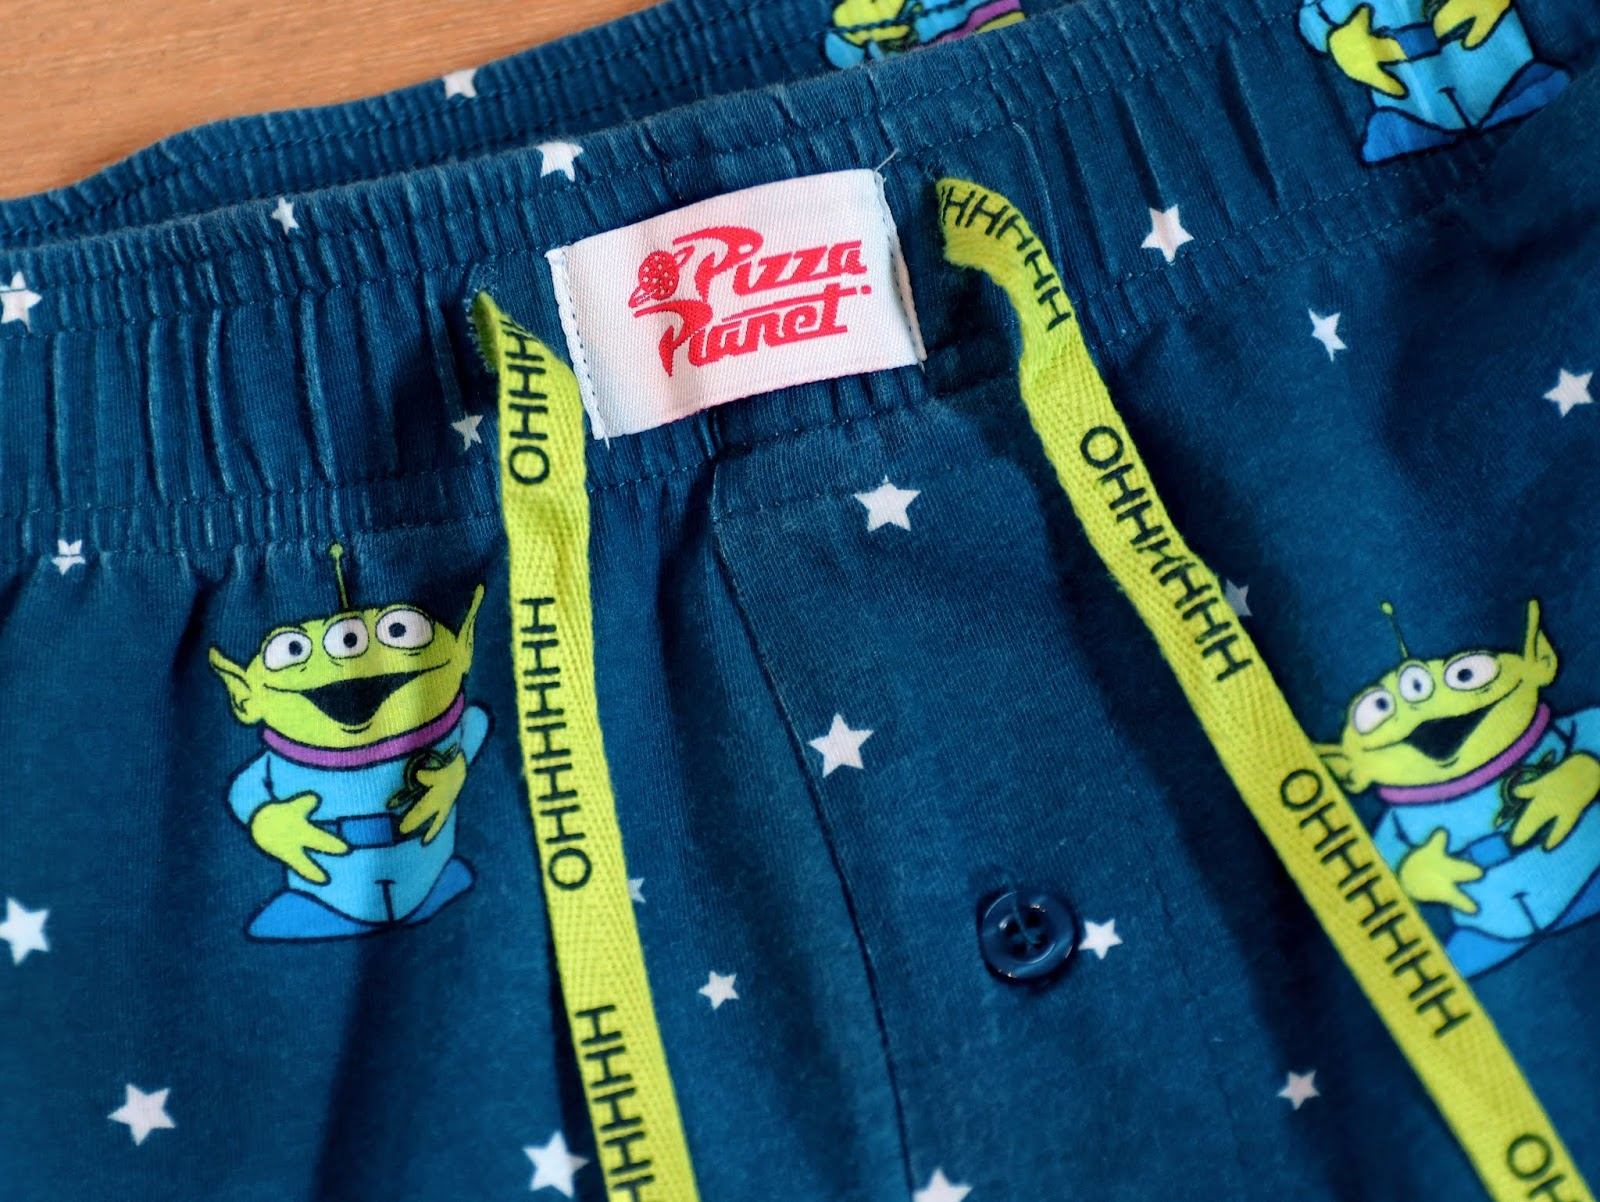 boxlunch toy story alien pizza planet pajamas